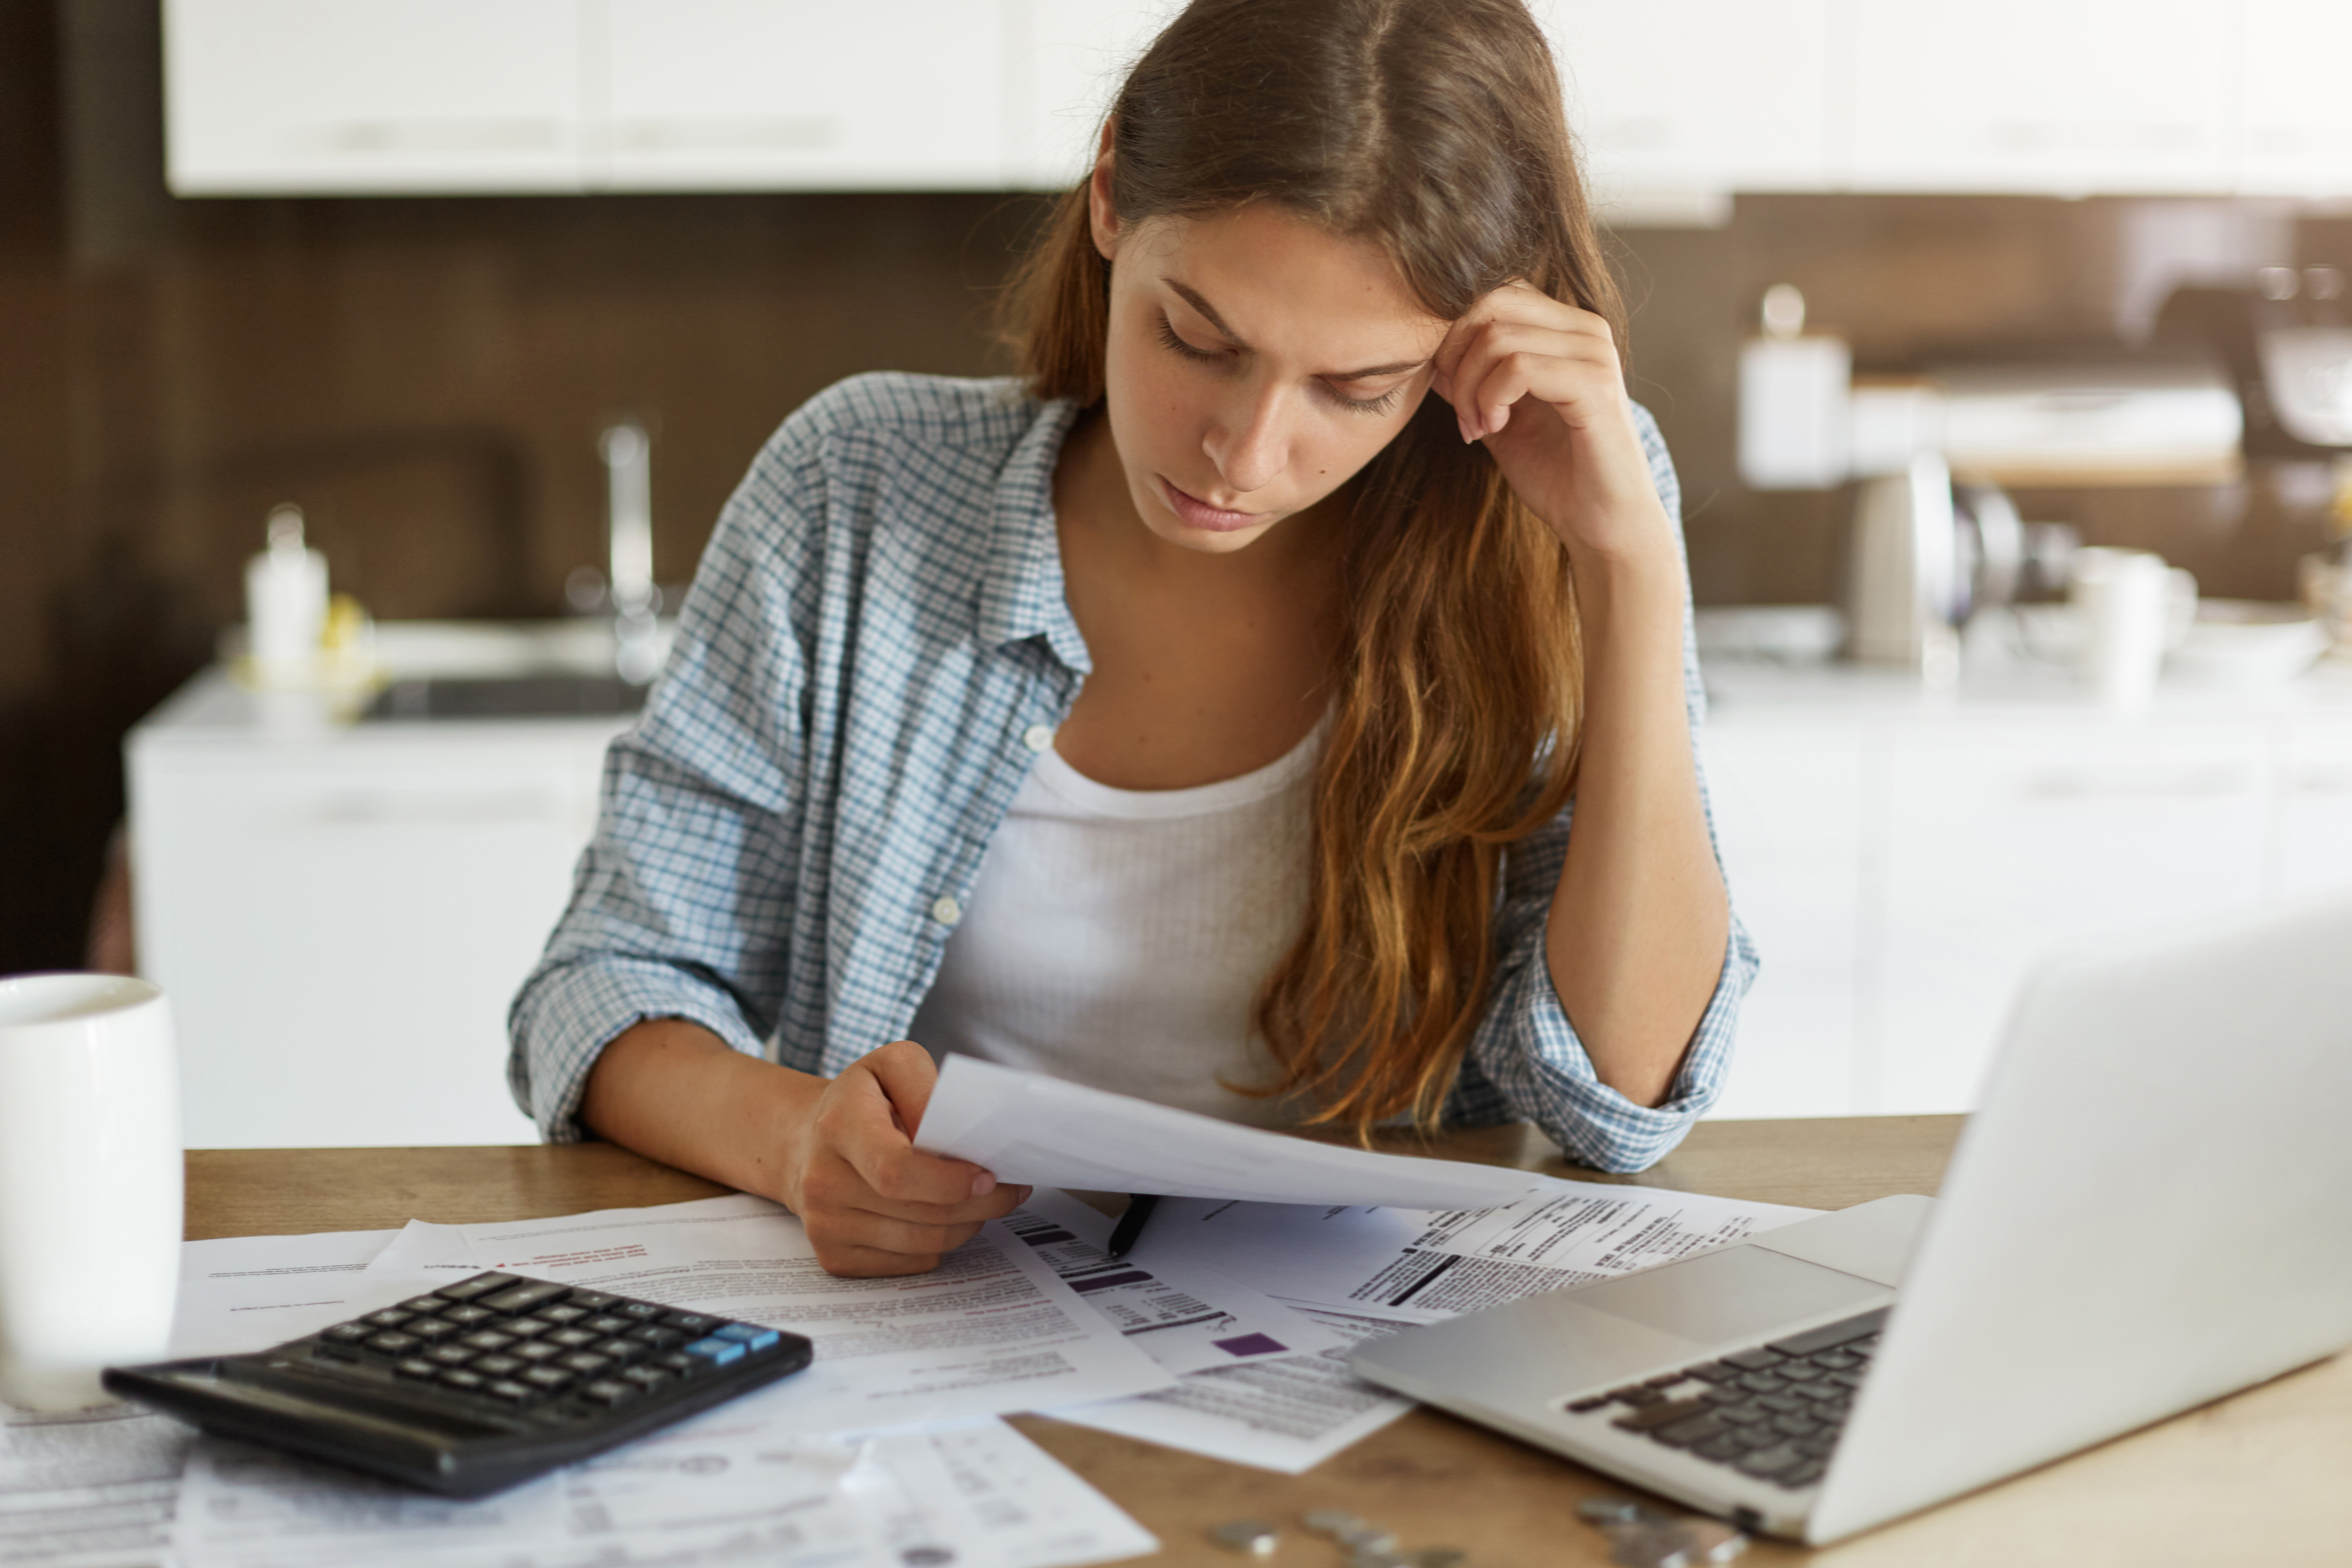 Worried About Your Credit